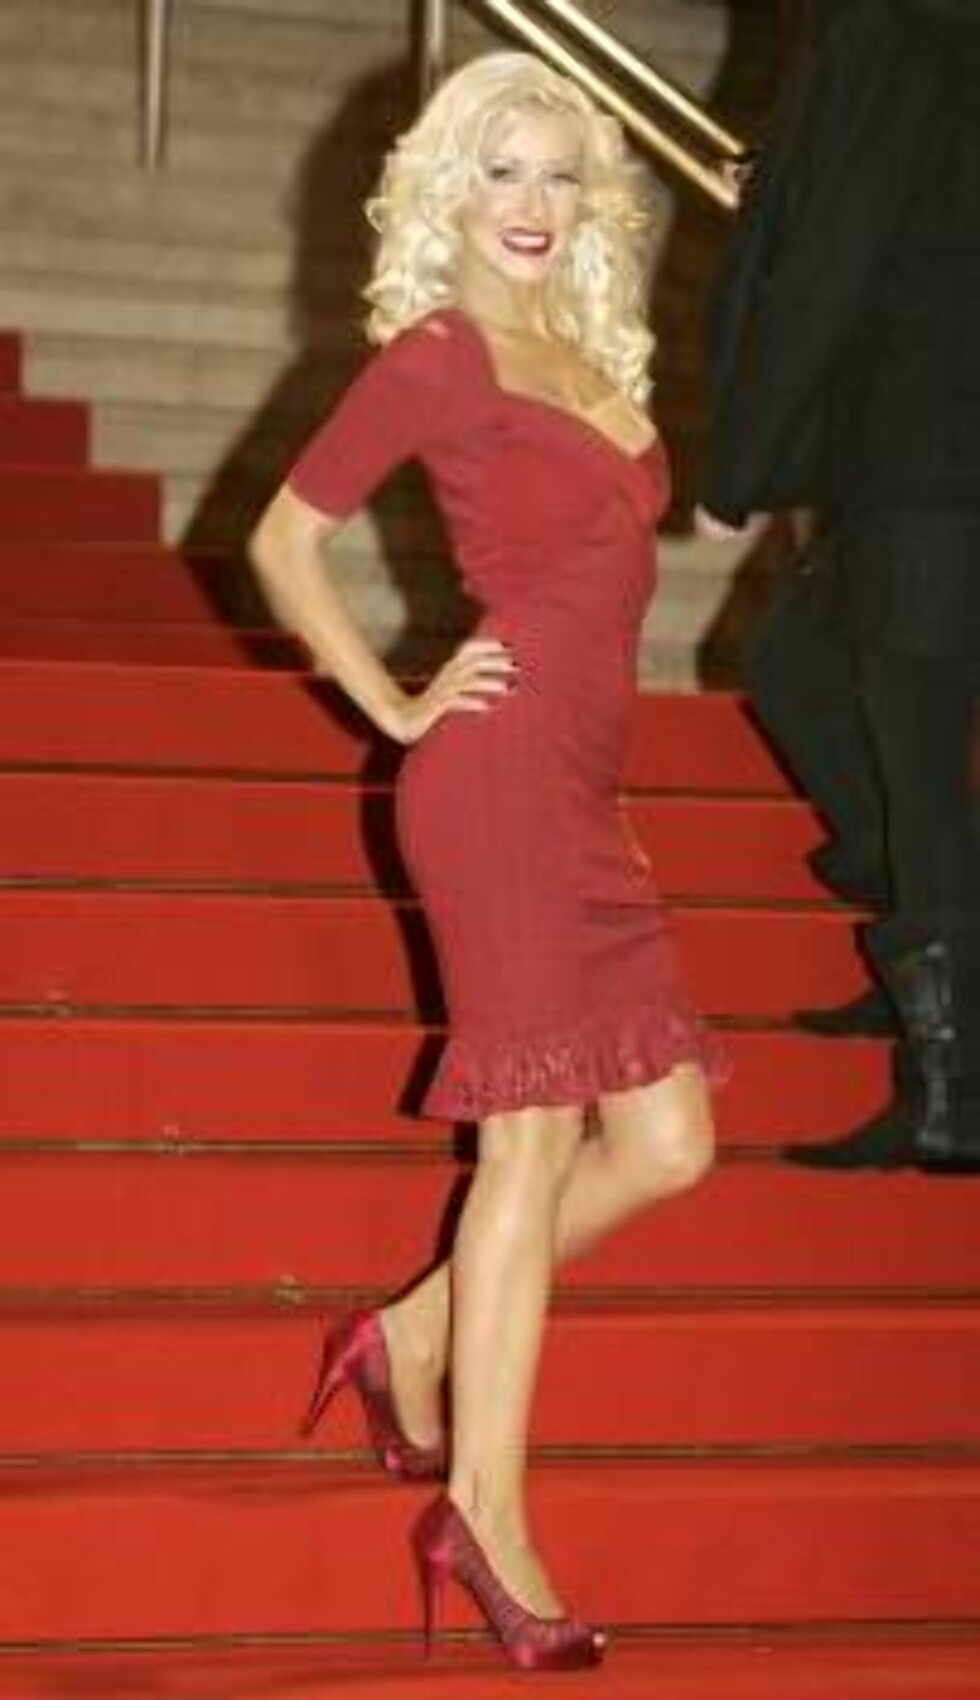 U.S. singer Christina Aguilera arrives at the Cannes festival palace to take part in the NRJ awards ceremony, in Cannes, southern France, Saturday, Jan. 20, 2007. (AP Photo/Lionel Cironneau) Foto: AP